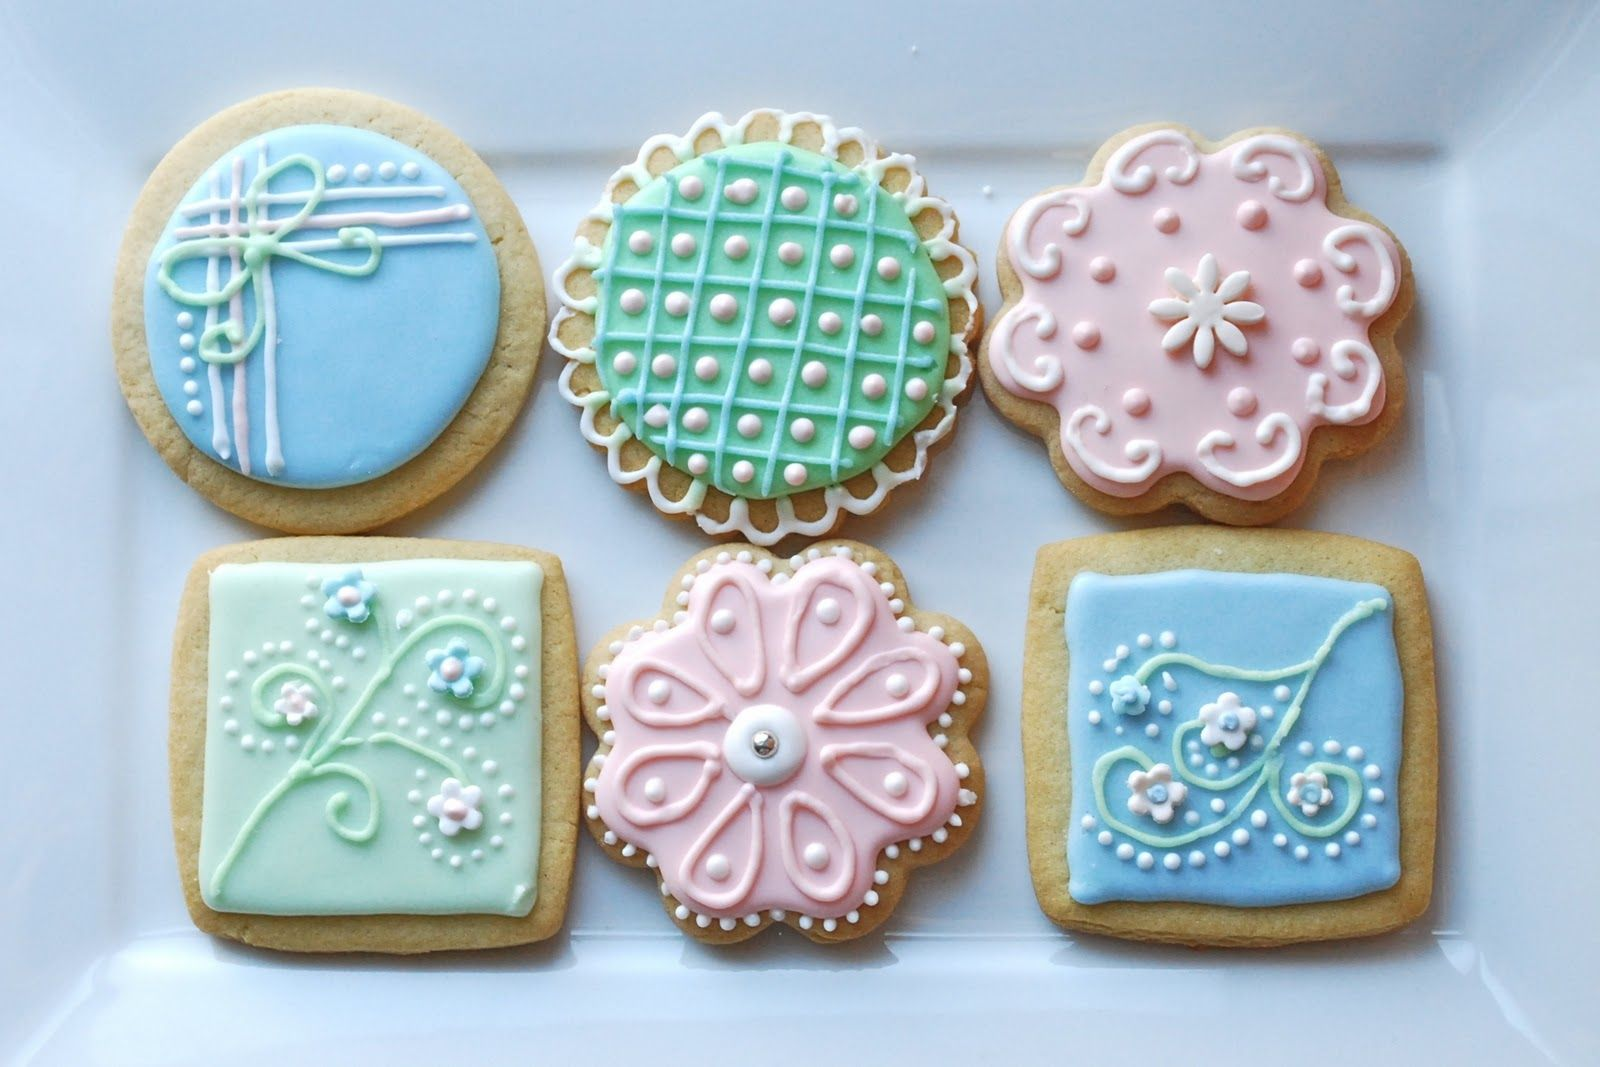 decorated sugar cookies - Google Search | Cookie decorating ...